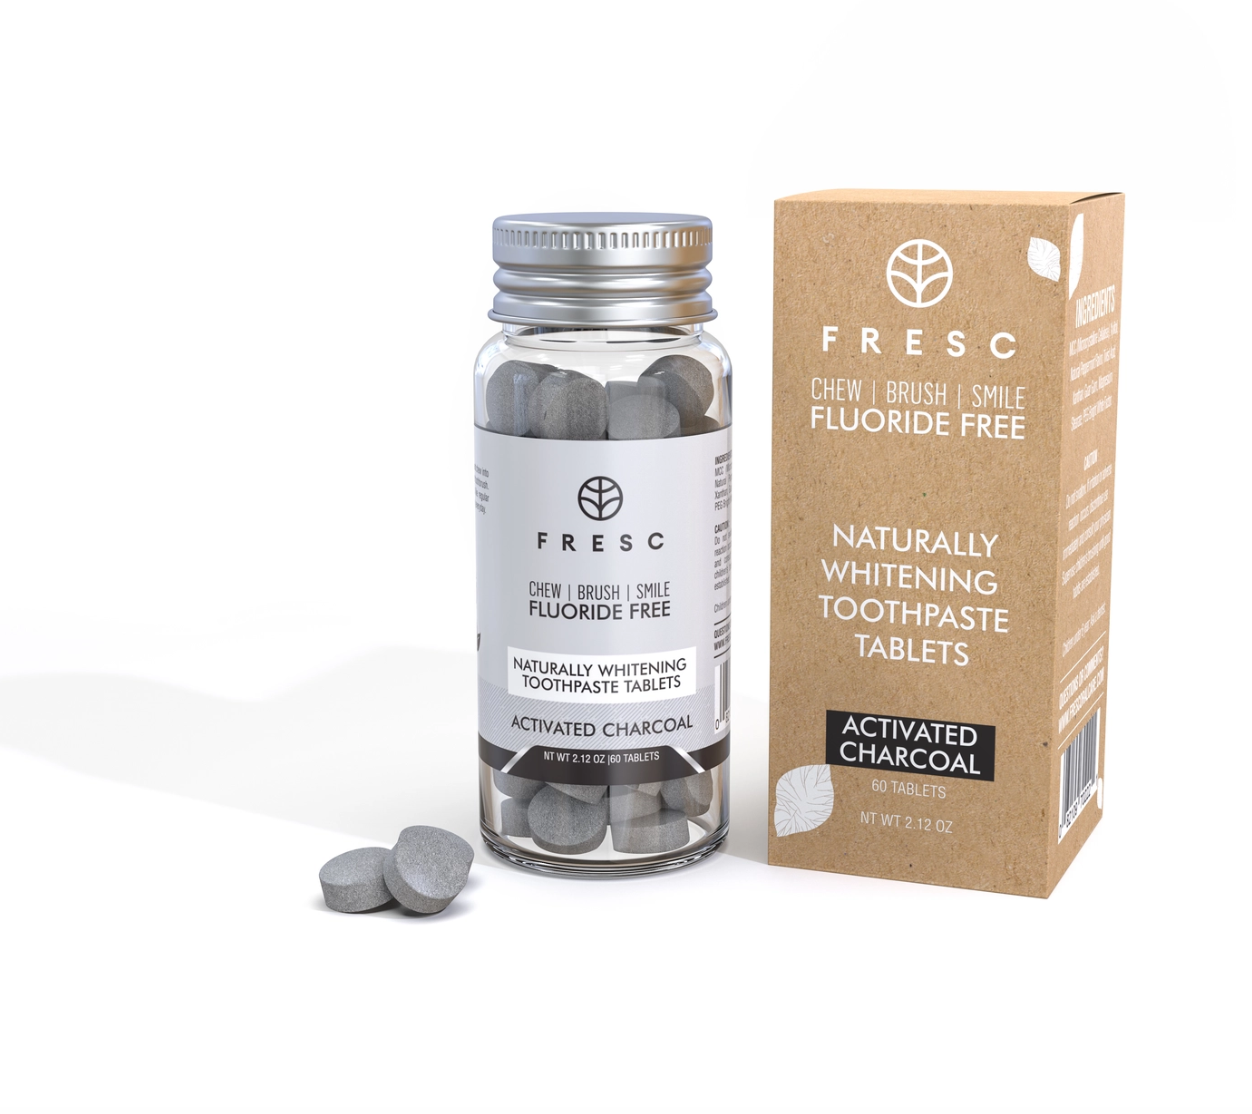 Fresc Activated Charcoal Toothpaste